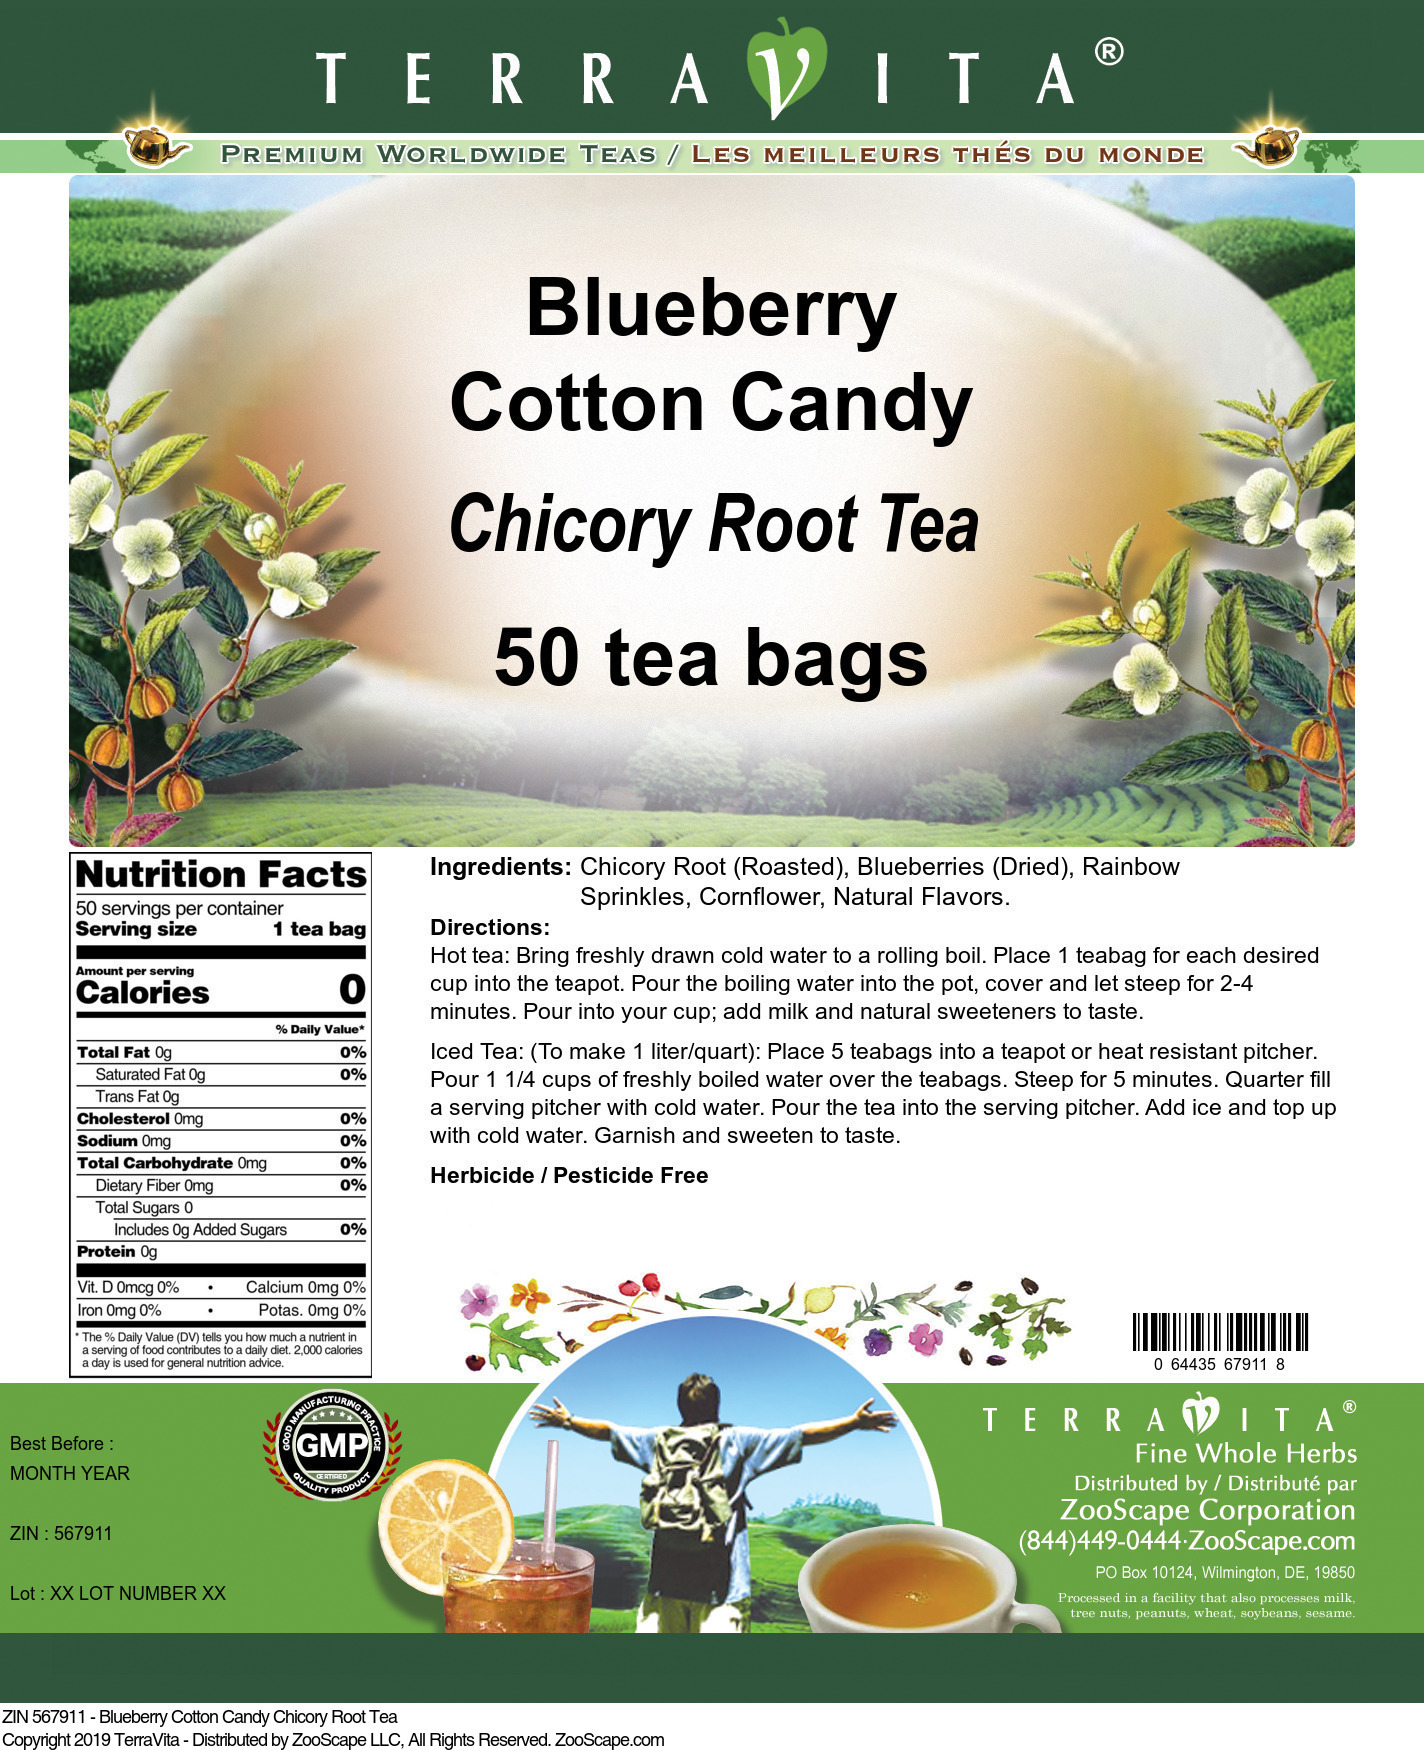 Blueberry Cotton Candy Chicory Root Tea